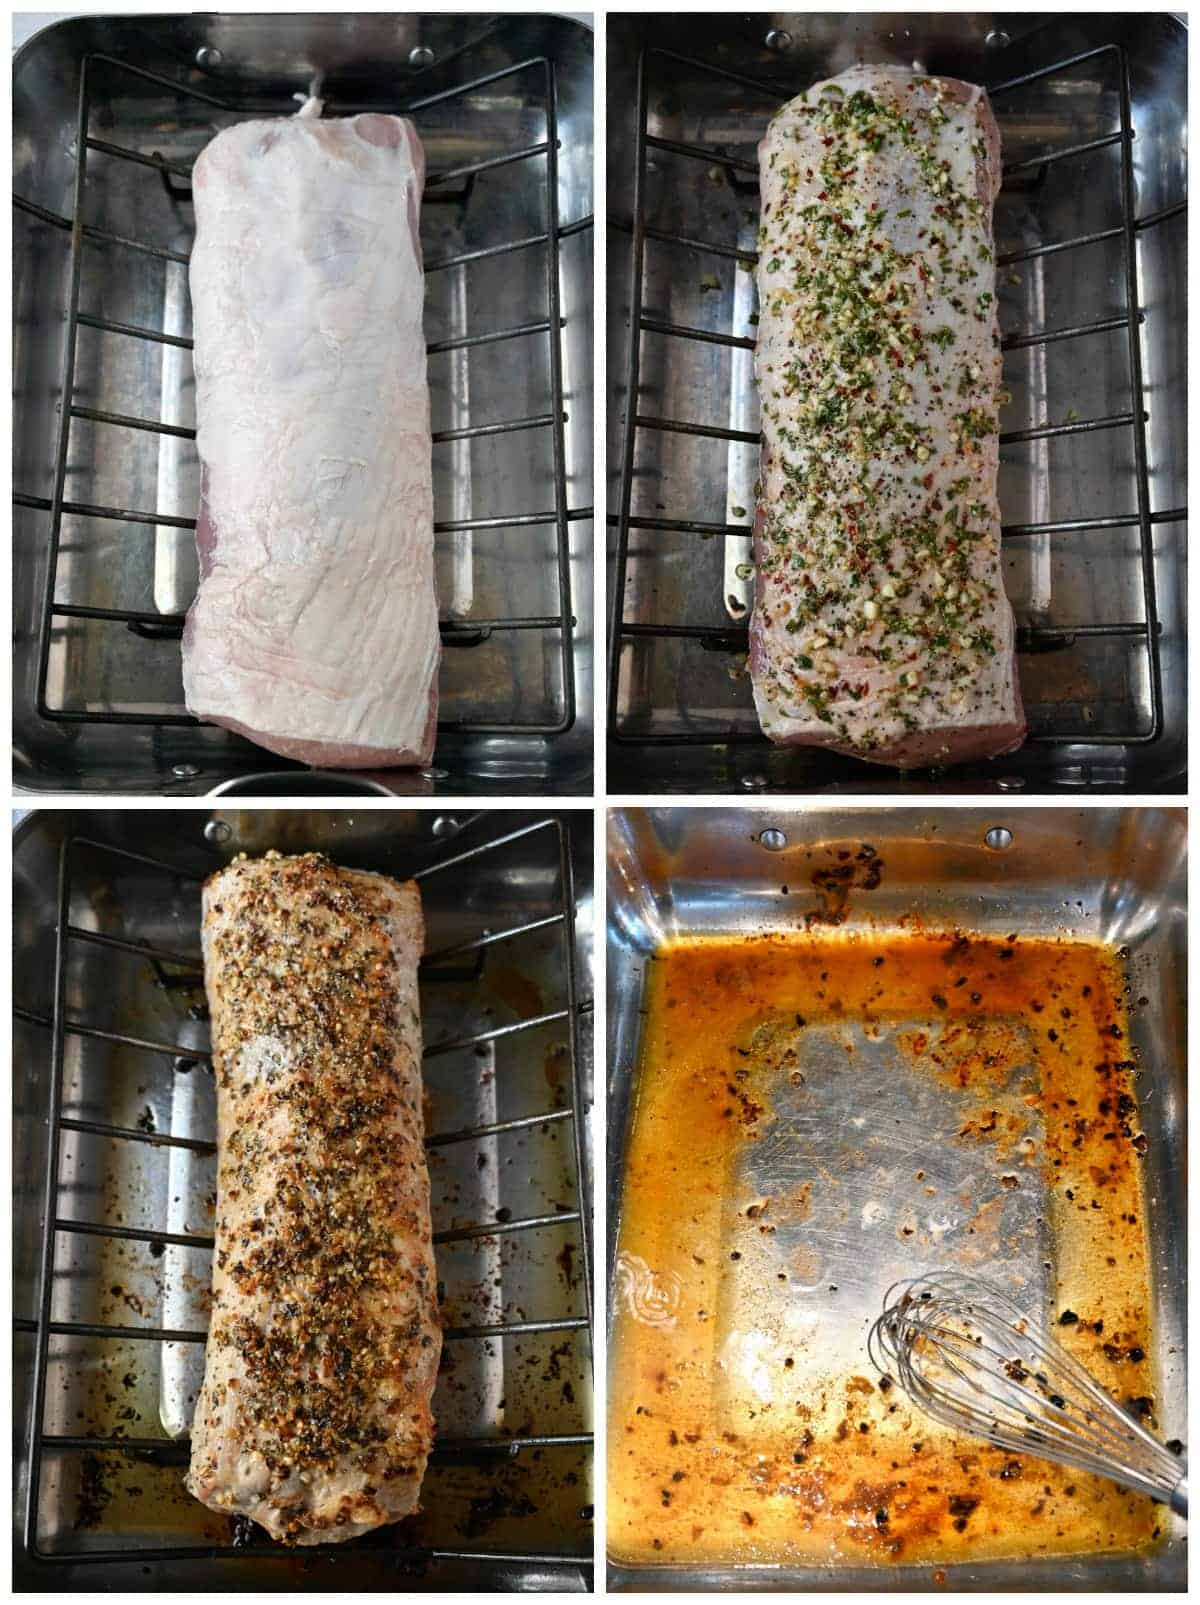 Four process photos. First one, raw porl loin roast on a rack in a baking pan. Second one, pork loin on a rach in a roasting pan with her mixture rubbed all over. Fourth one, pork loin on a rack in a roasting pan dine and out of the oven. Fourth one, Pork loin and rack removed from roasting pan. Roasting pan is has drippings from the roast left in the pan.